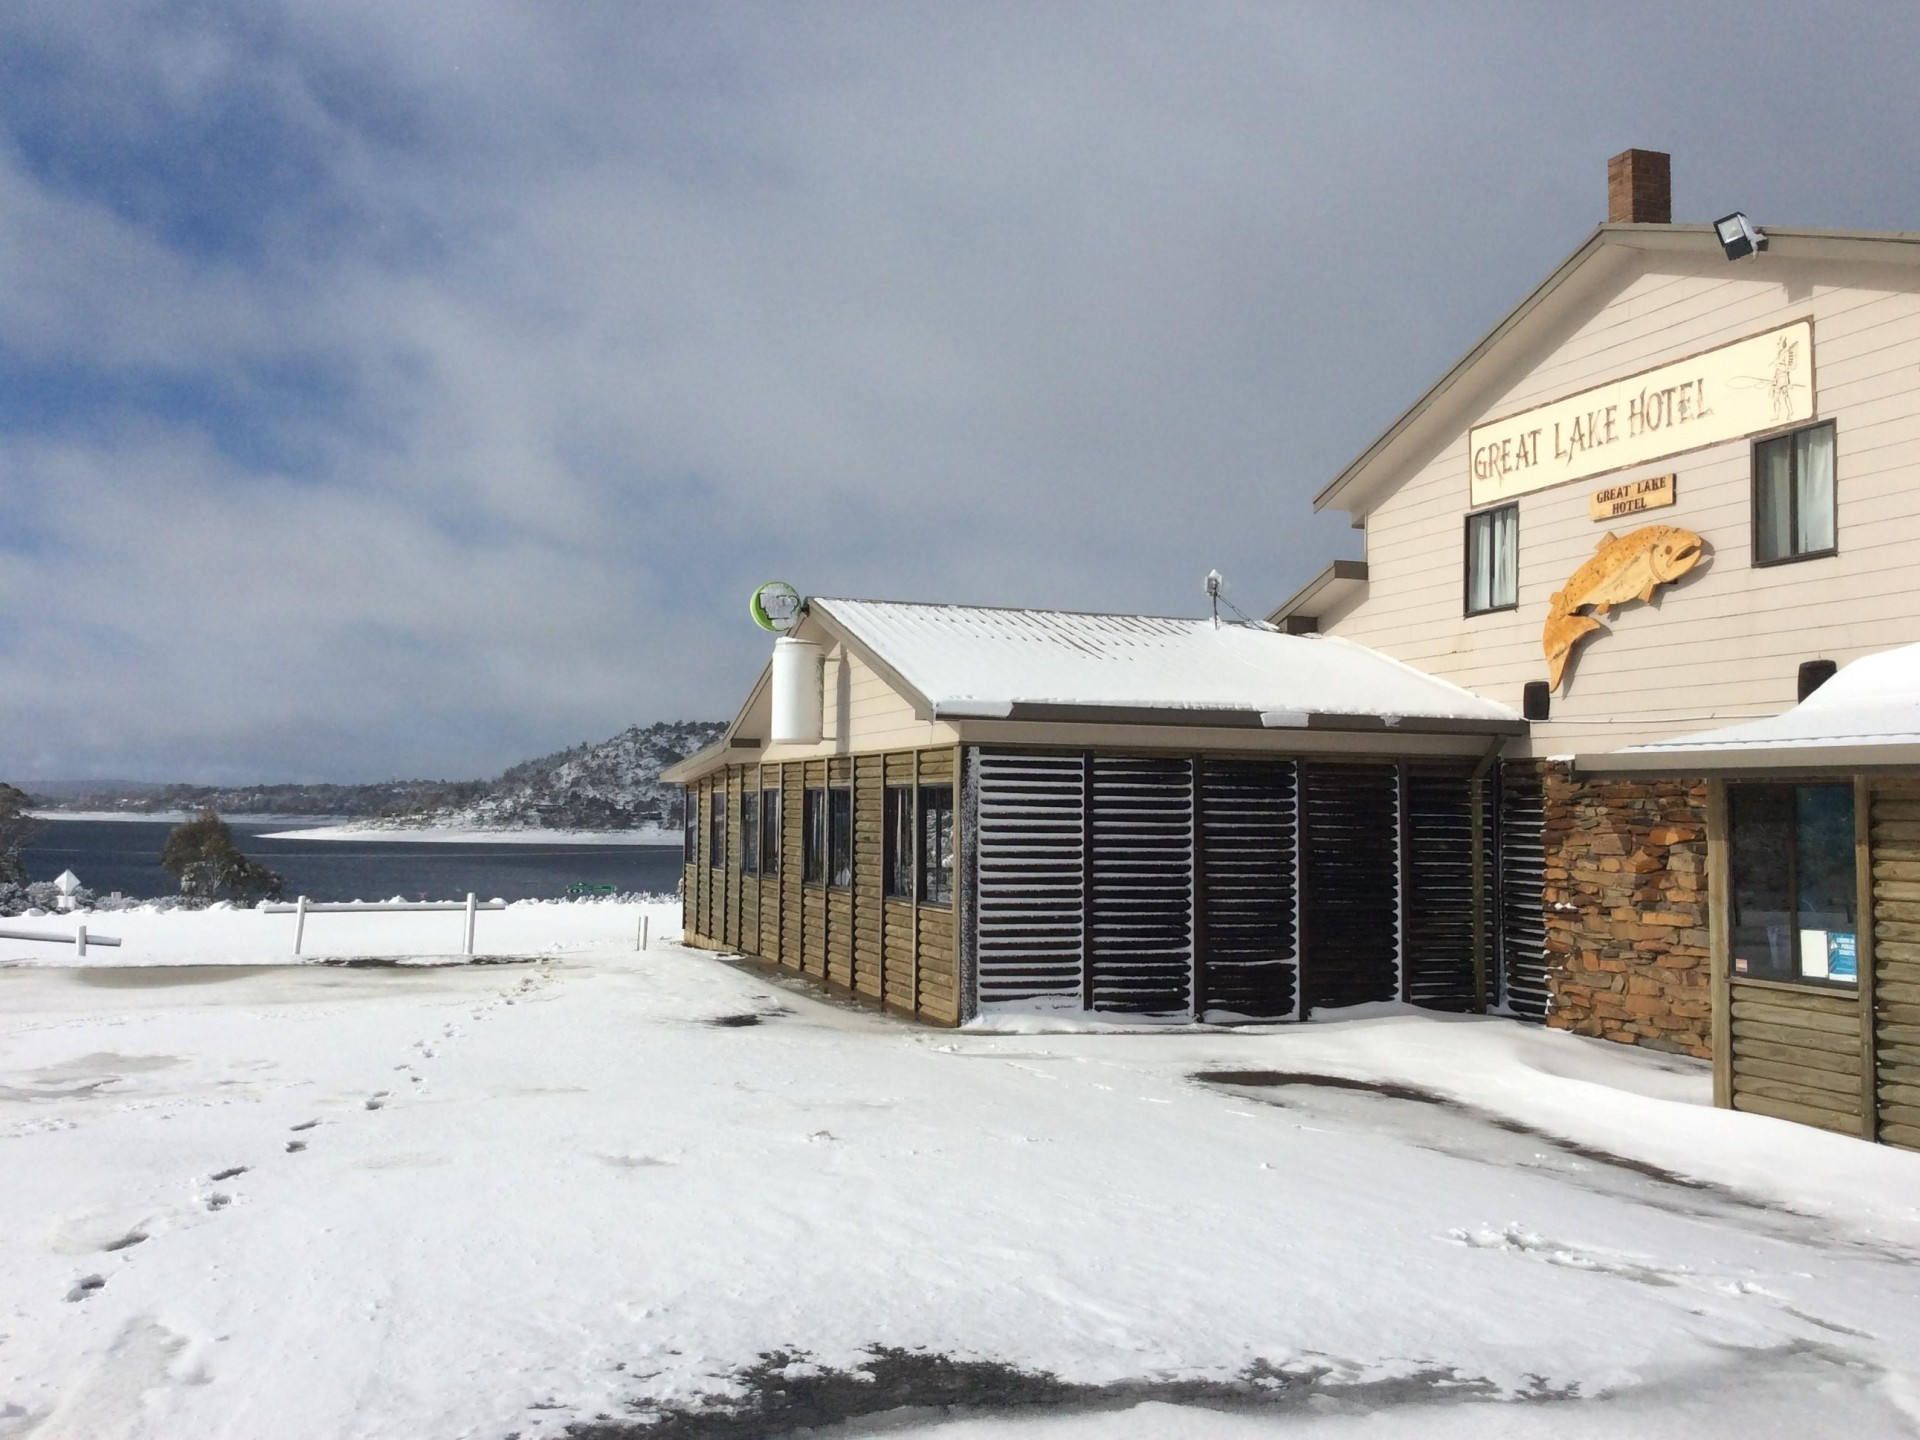 Great Lake Hotel,General Store & Fuel sales, 5 bdr home, million $ turnover,